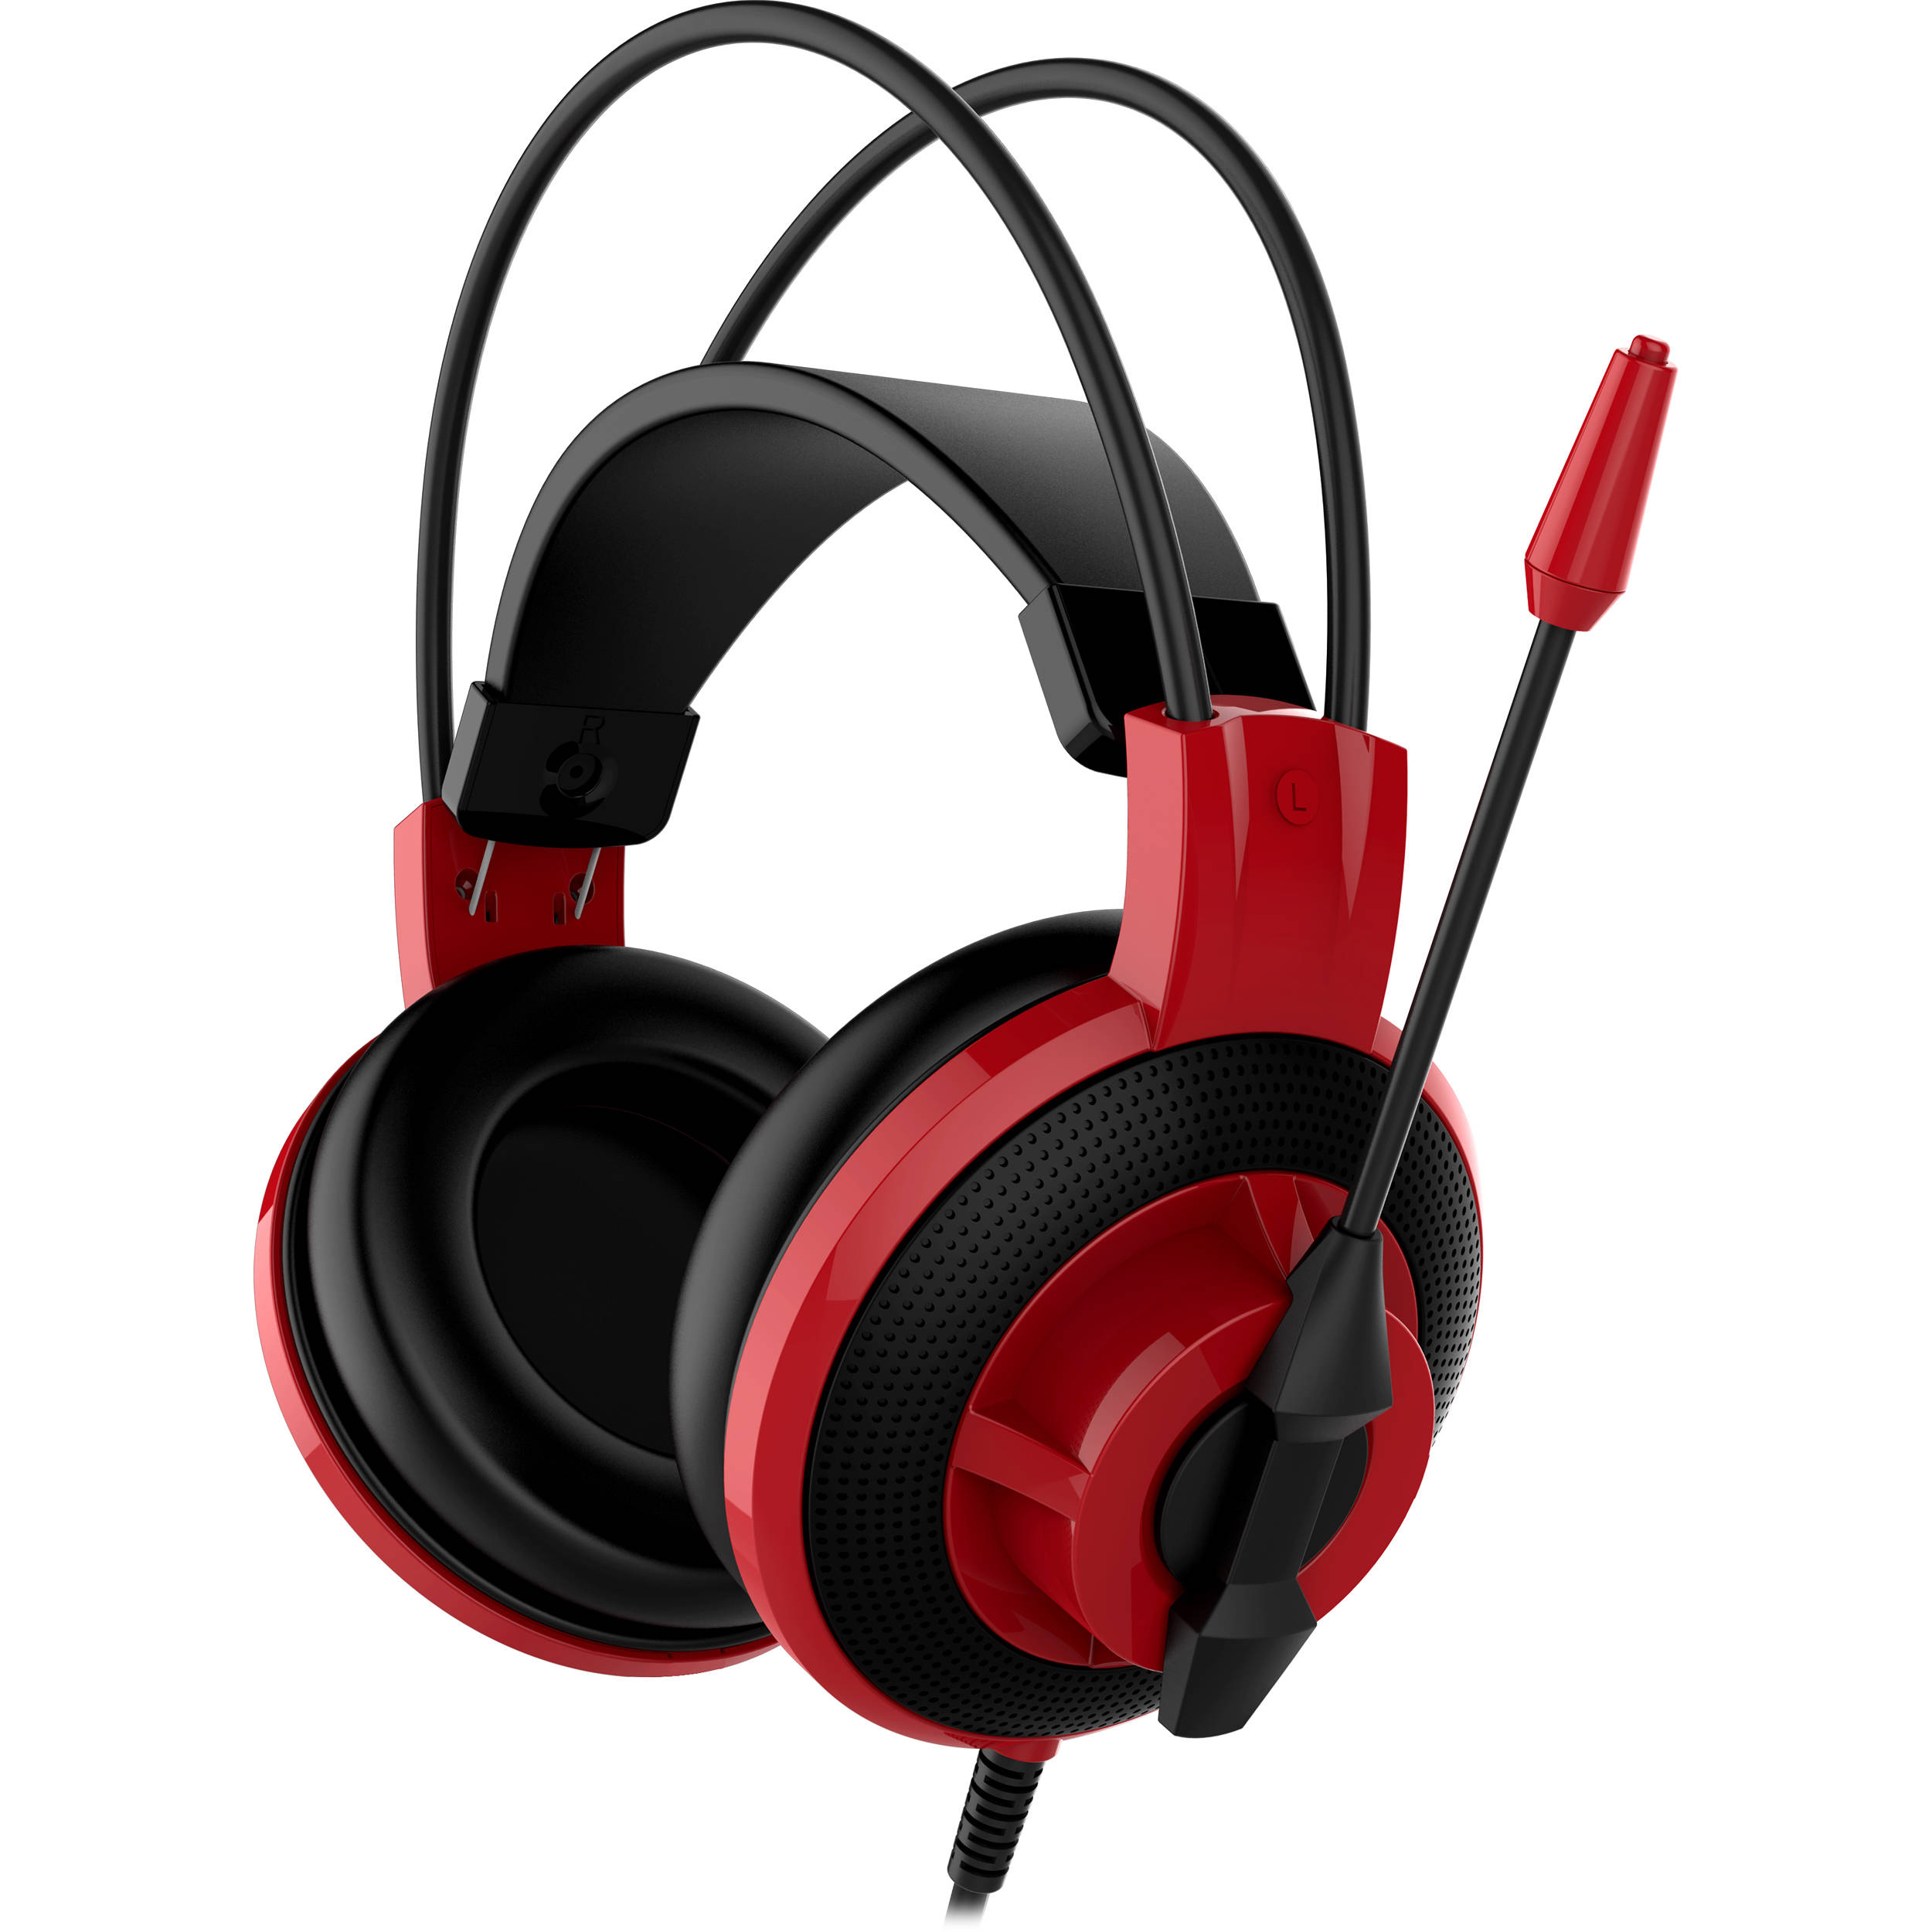 72615ca220a MSI DS501 Gaming Headset DS501 B&H Photo Video